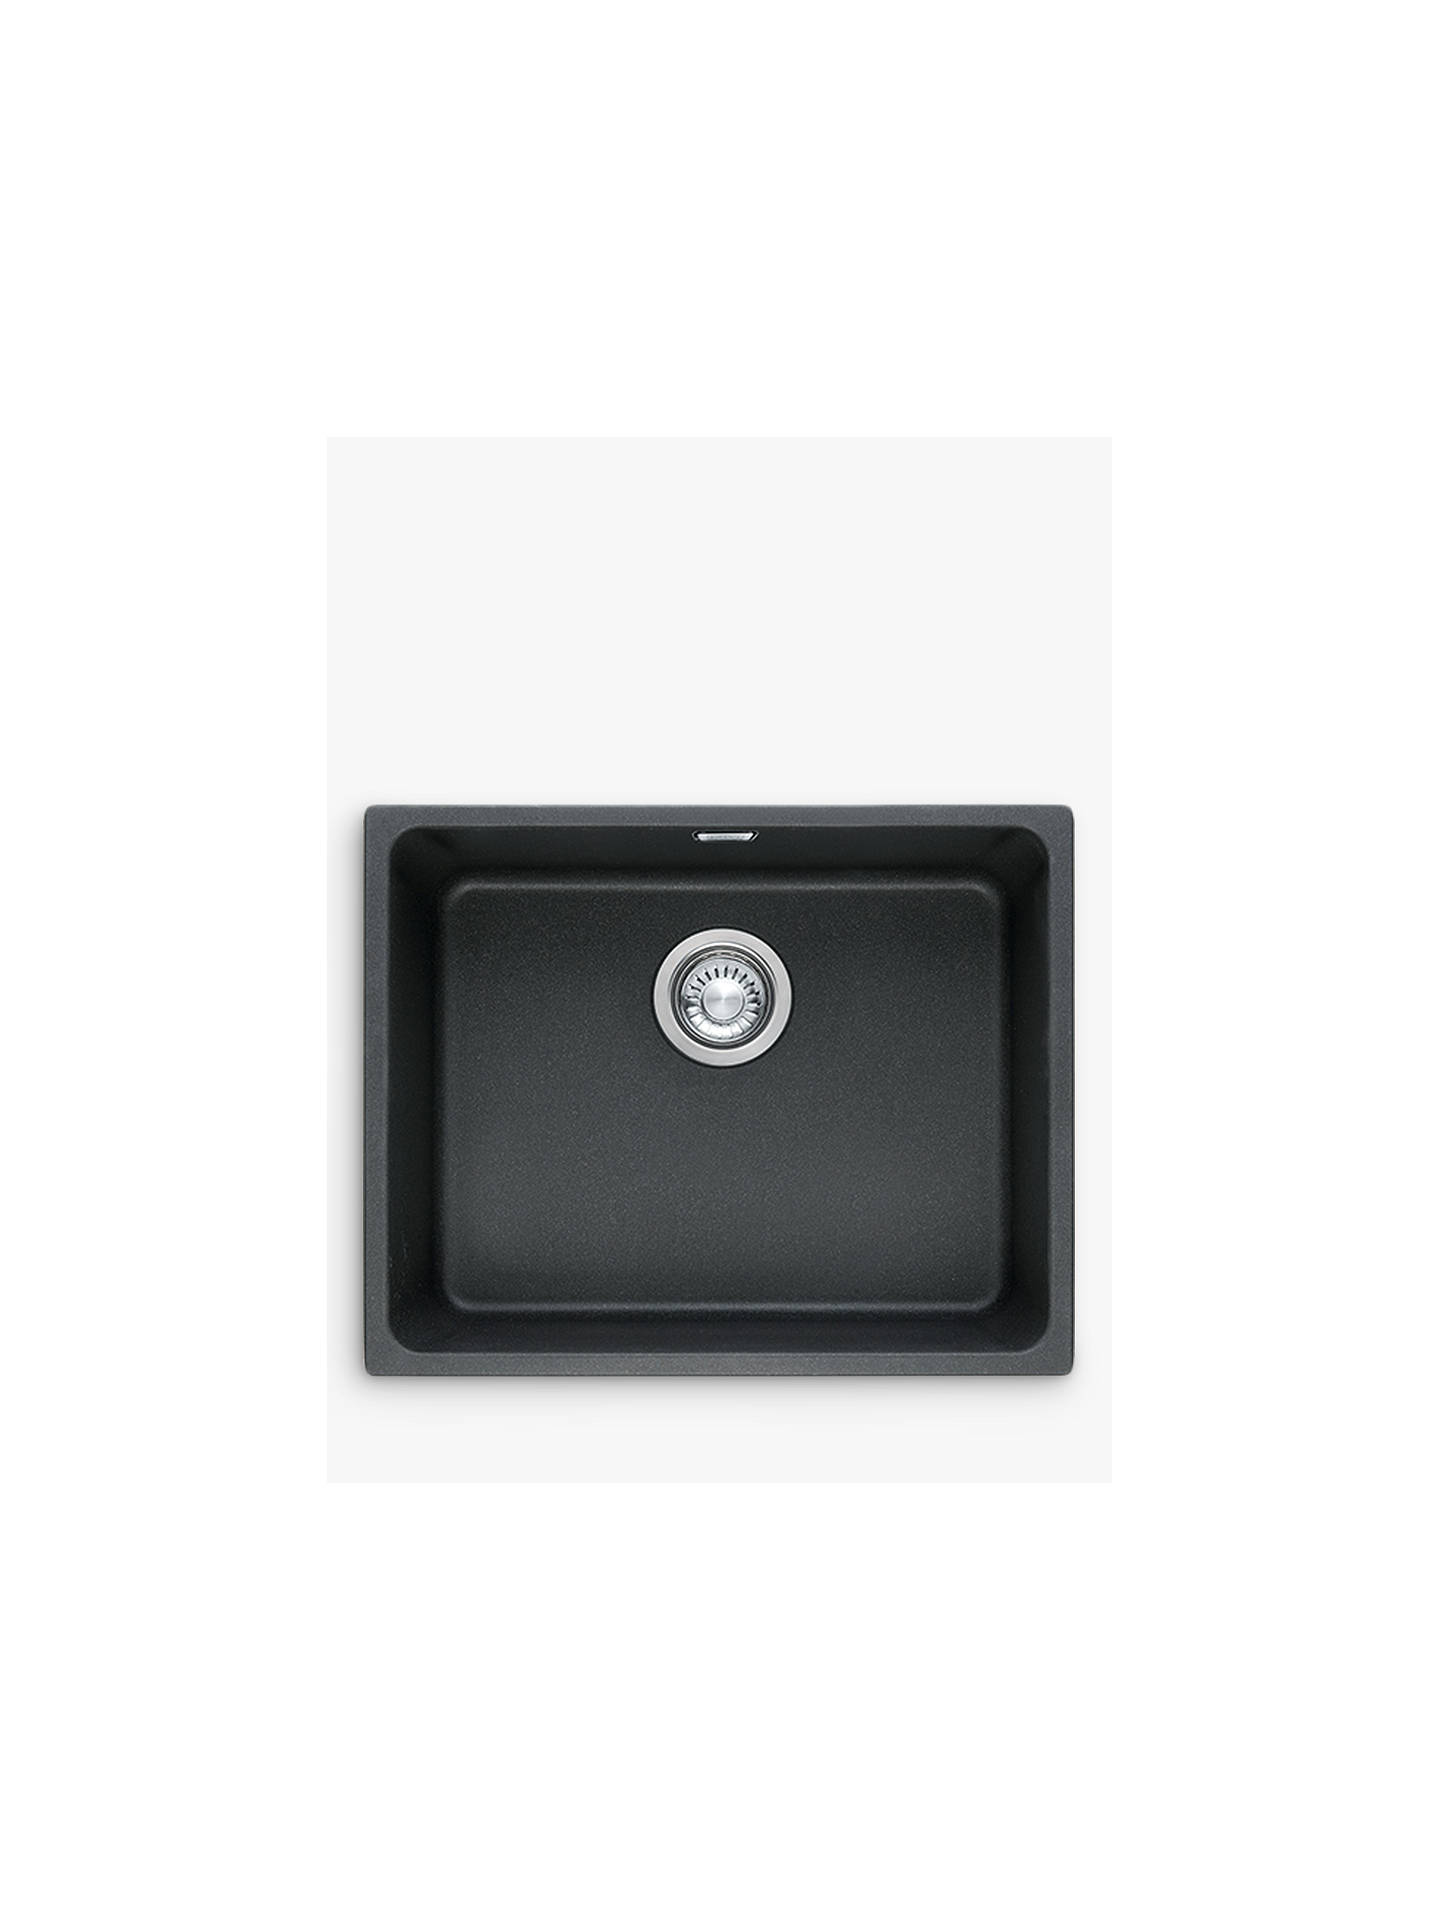 Buy Franke Kubus KBG 110 50 Single Bowl Undermounted Fraganite Kitchen Sink, Onyx Online at johnlewis.com